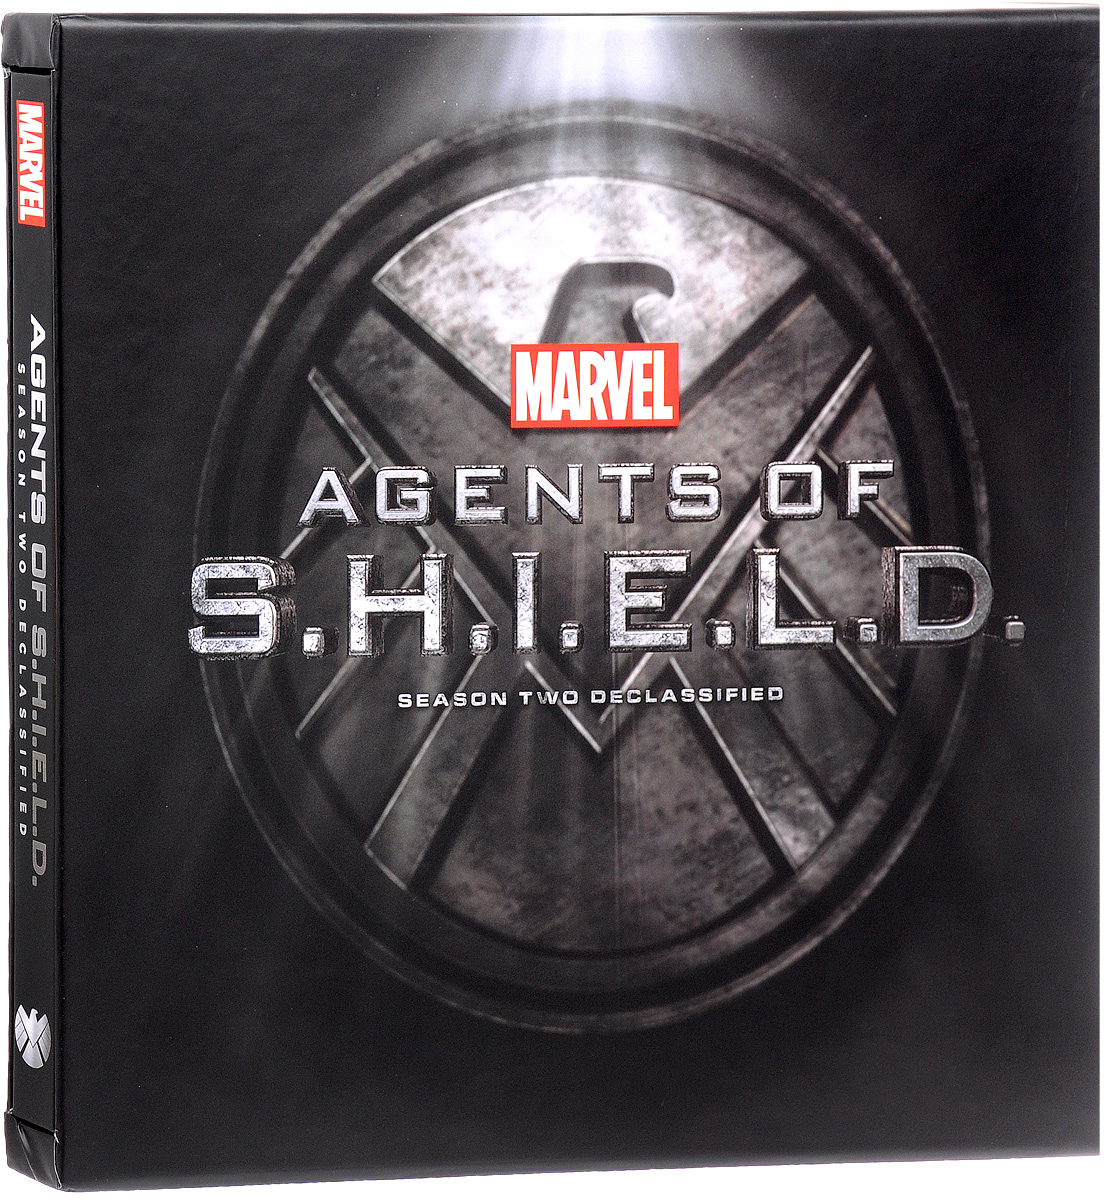 Marvel's Agents of S.H.I.E.L.D.: Season Two Declassified 13 interlayer a4 plastic candy color document bag file folder expanding wallet bill folder 330mm x 255mm x 35mm deli 72386 02